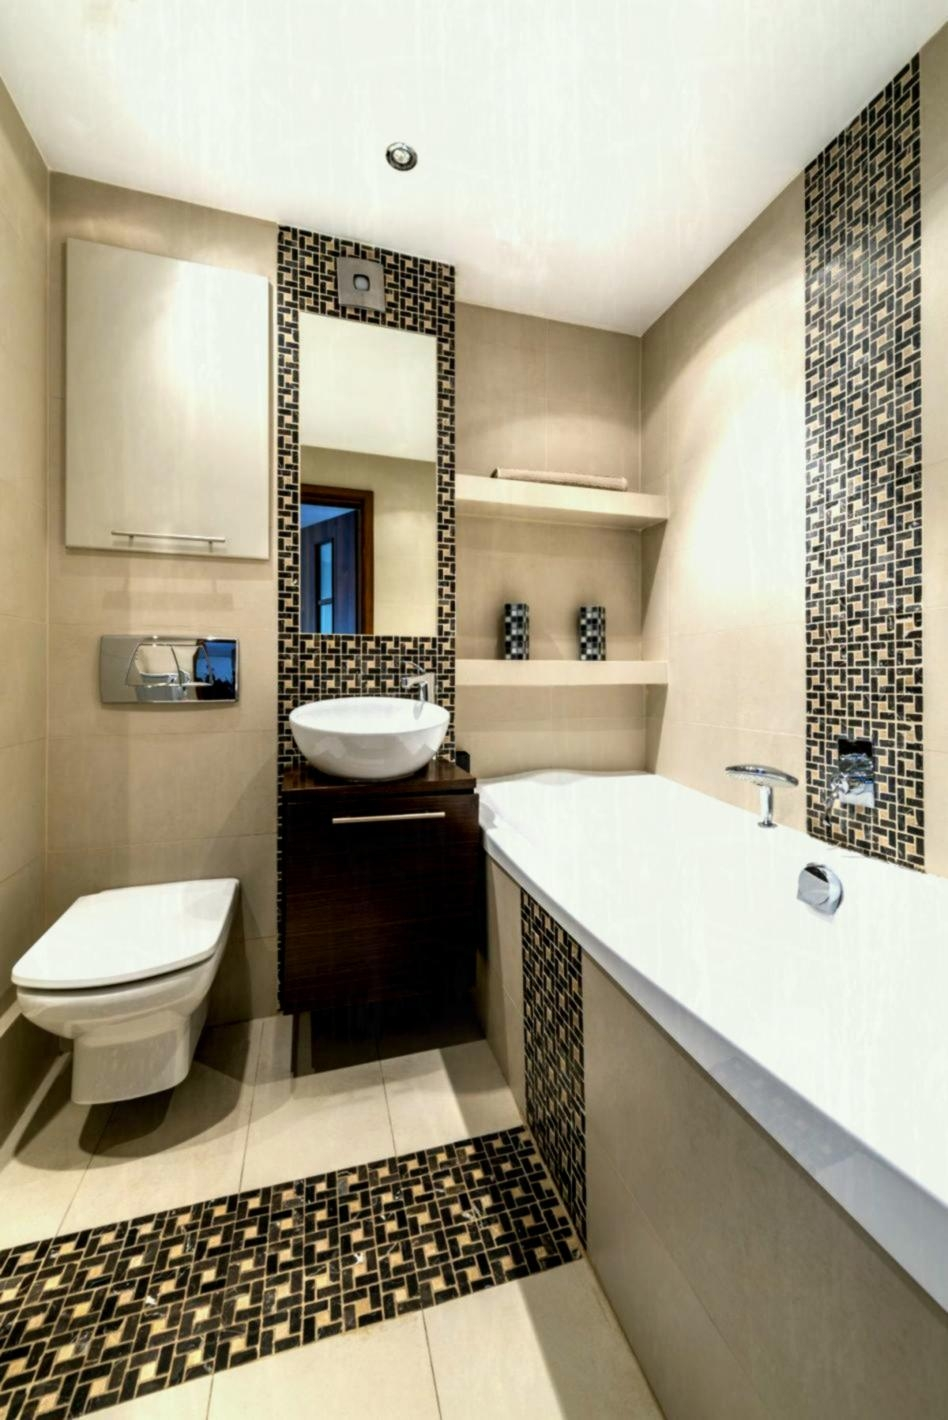 Apartment Bathroom Renovation Cost Stand Up Shower Small